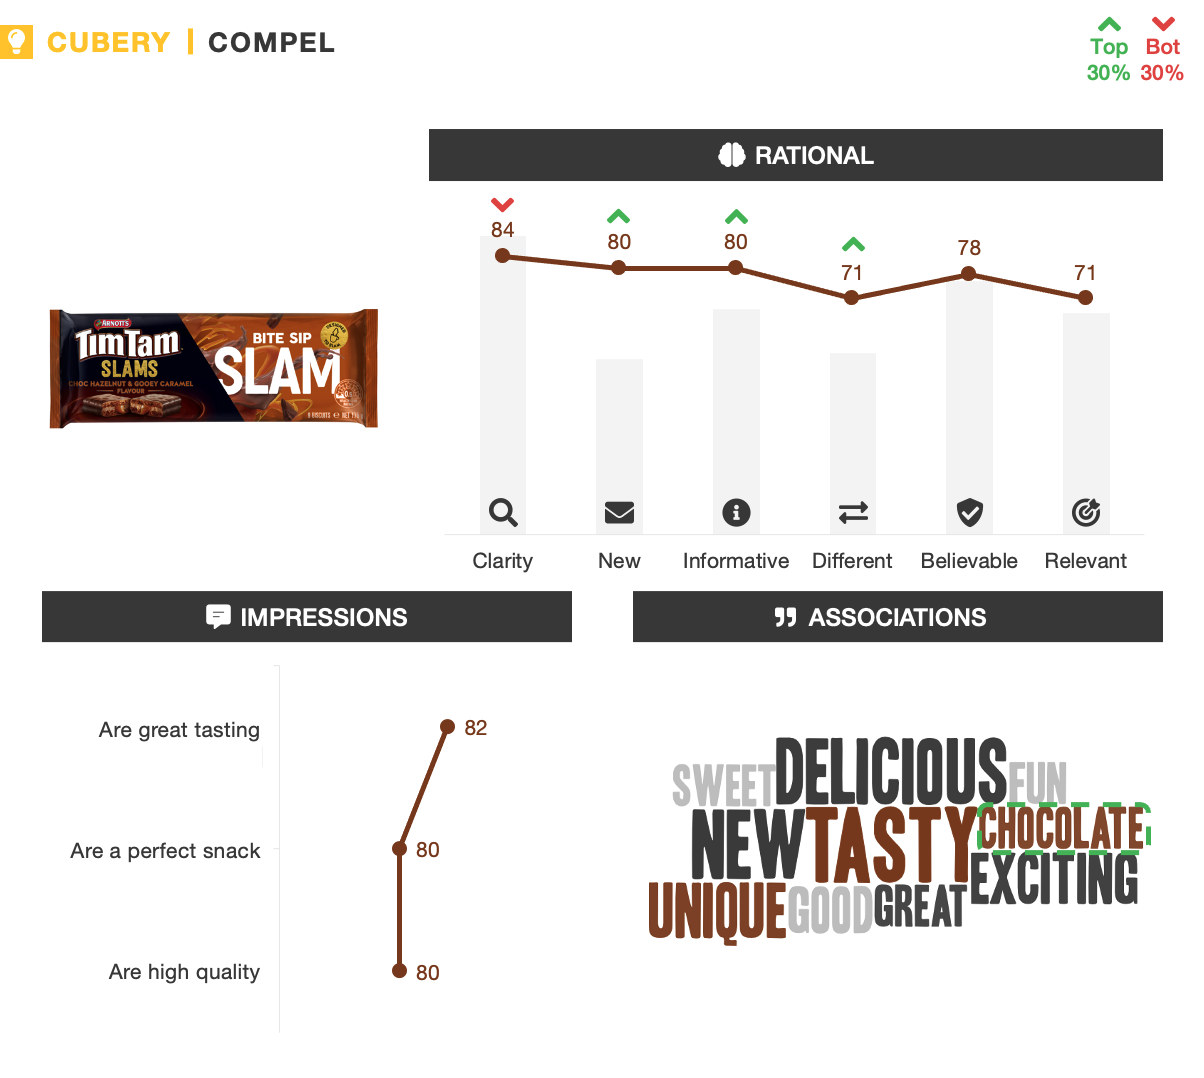 Tim Tam Slams - New Product Packaging Testing - Compel